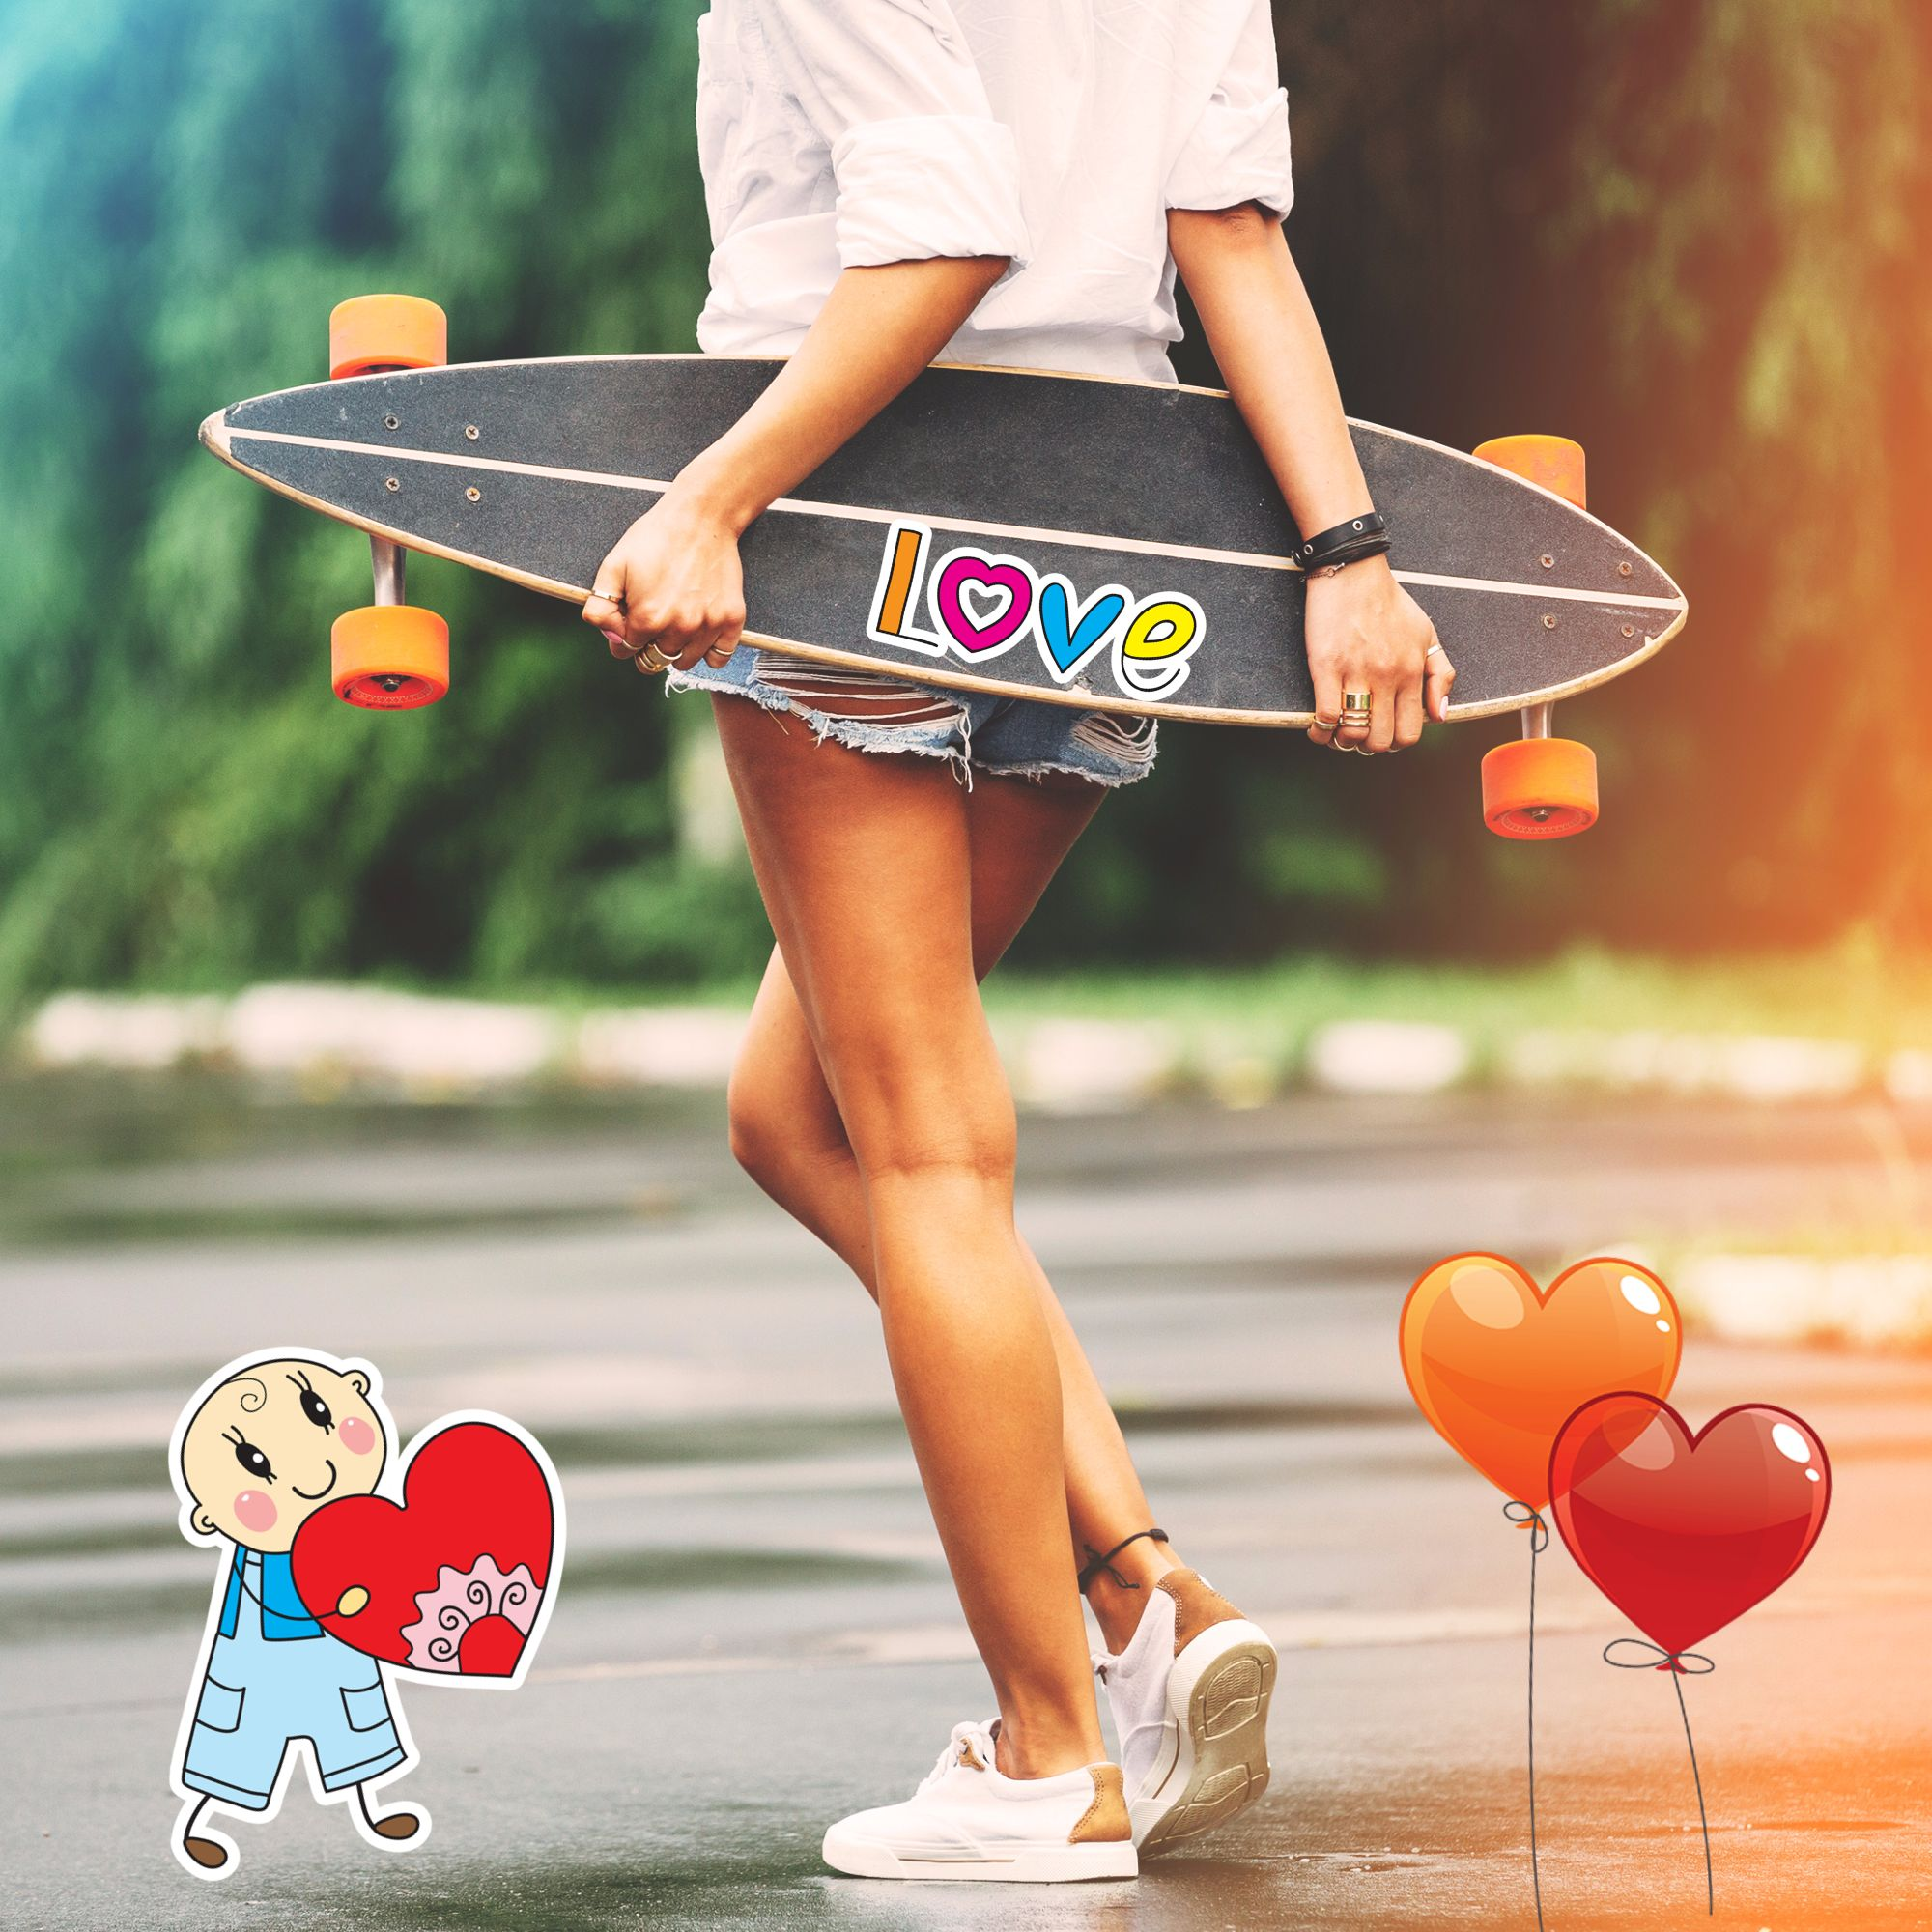 Love photo card with funny stickers was made online with the help of free photo editor